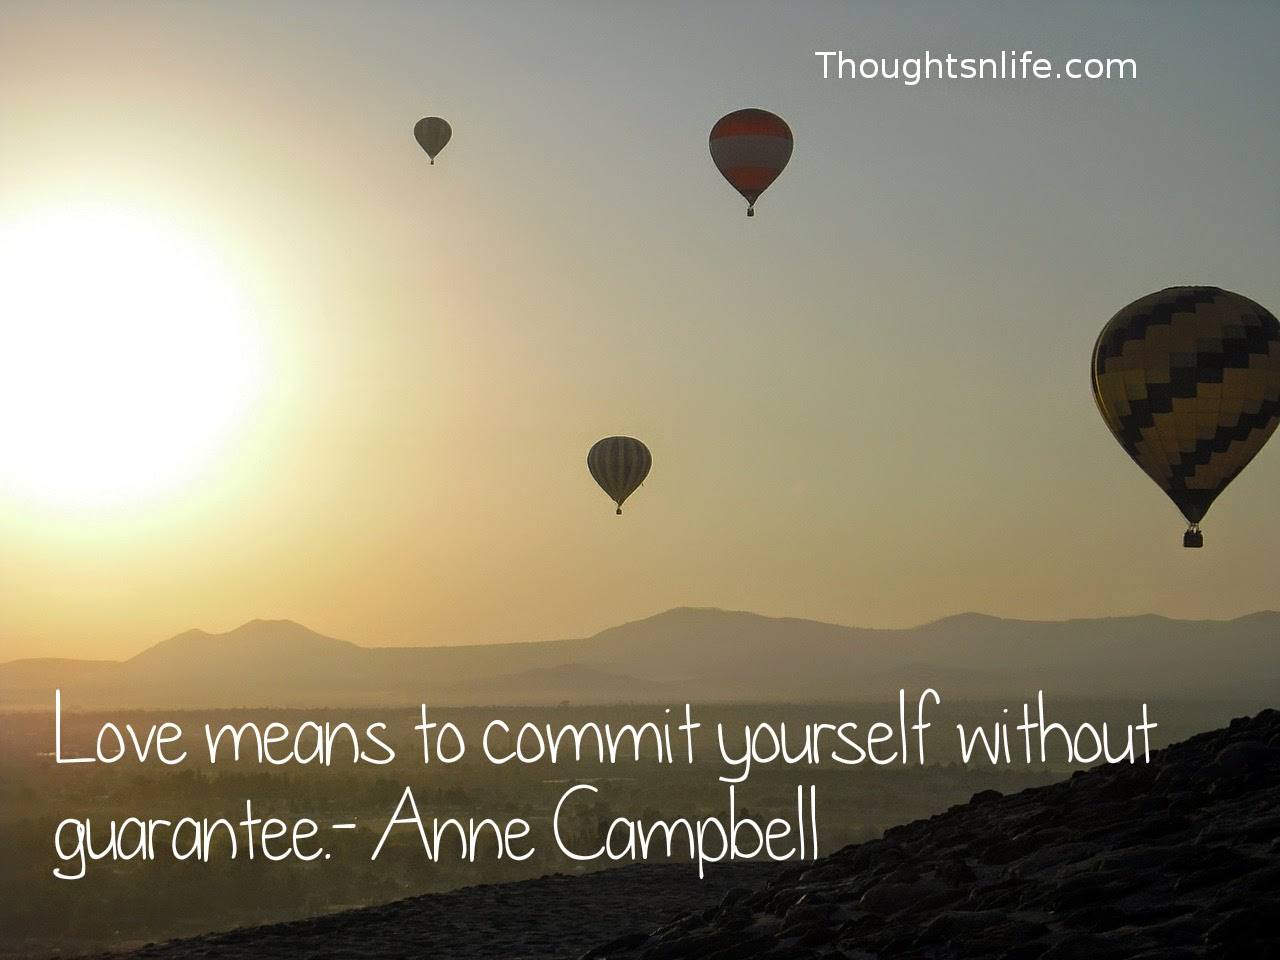 Thoughtsnlife.com: Love means to commit yourself without guarantee. - Anne Campbell